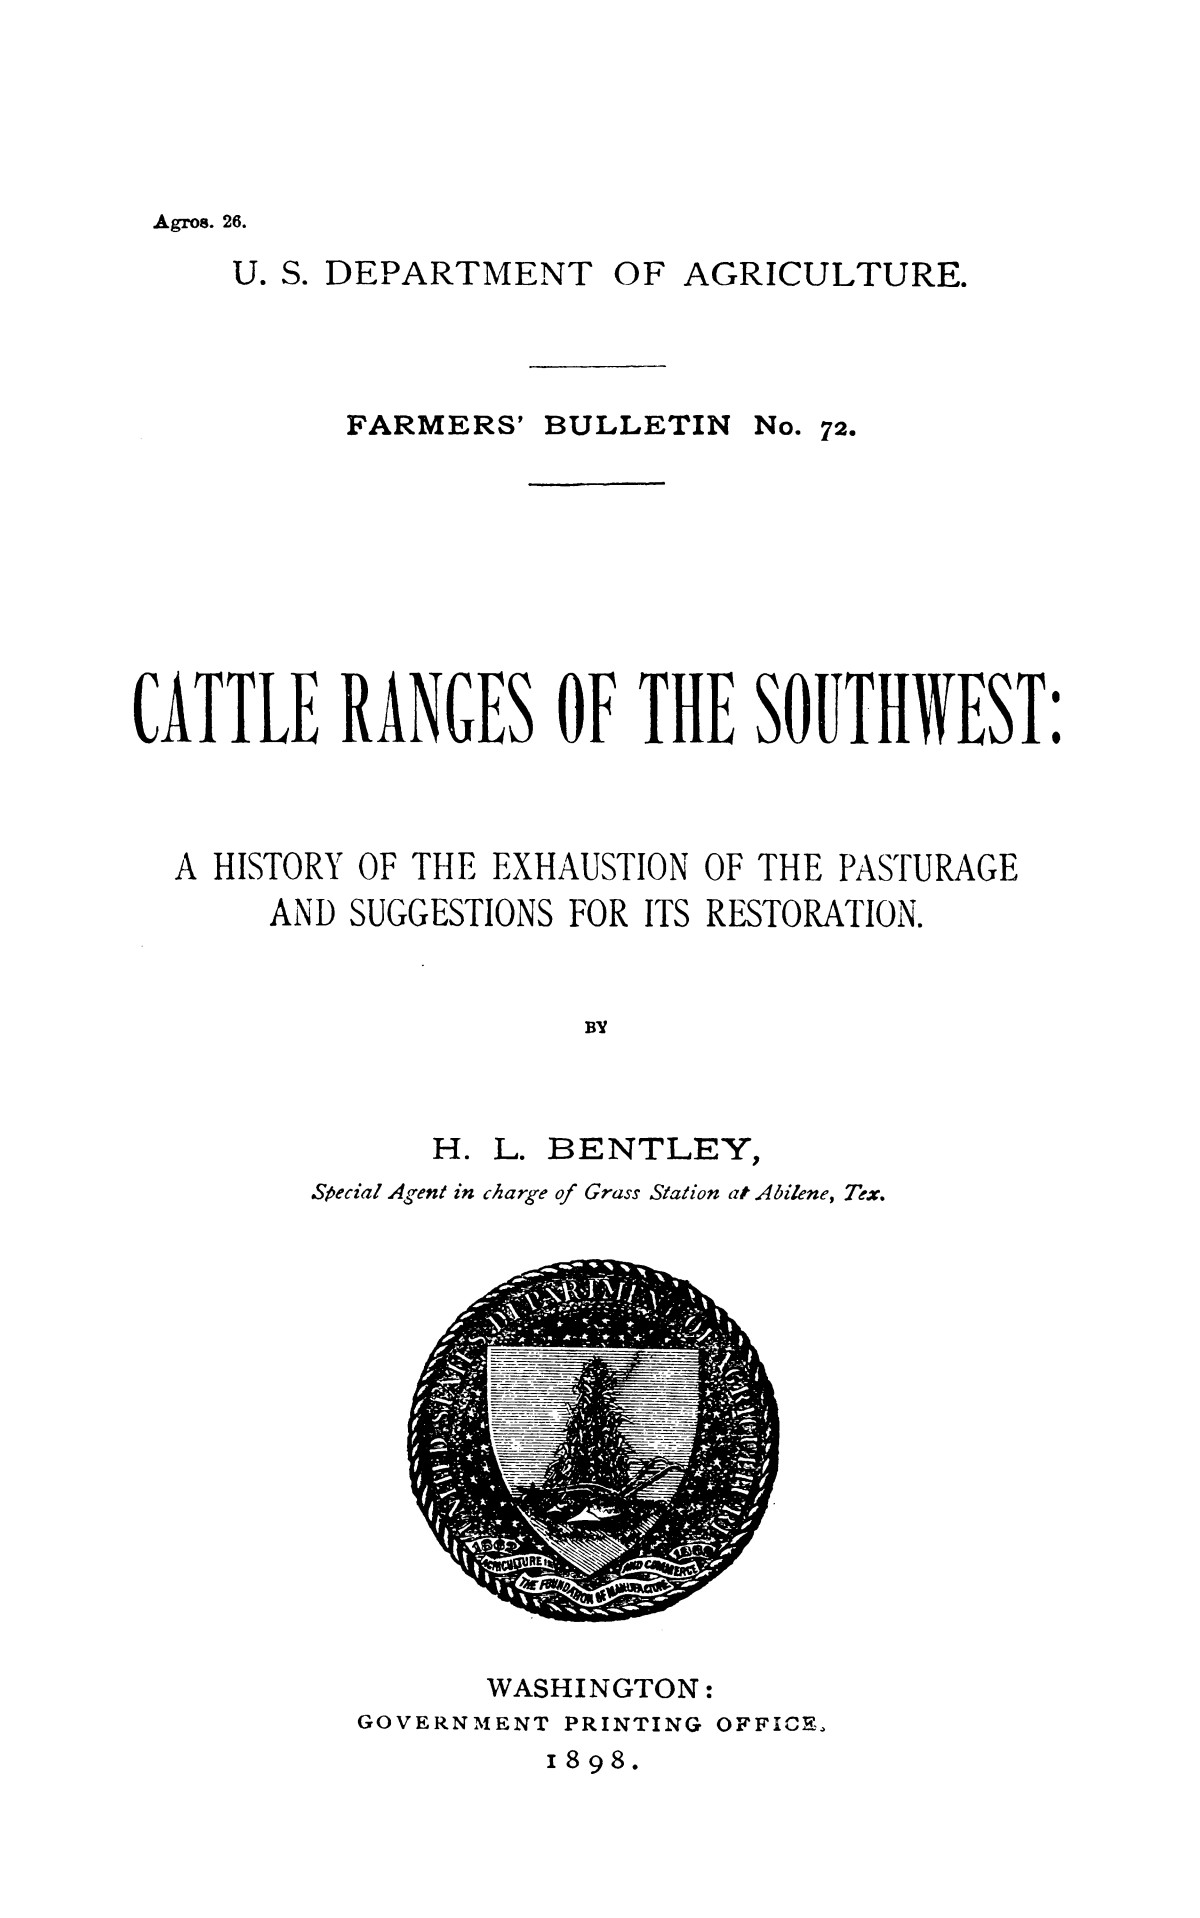 Cattle Ranges of the Southwest                                                                                                      [Sequence #]: 1 of 32